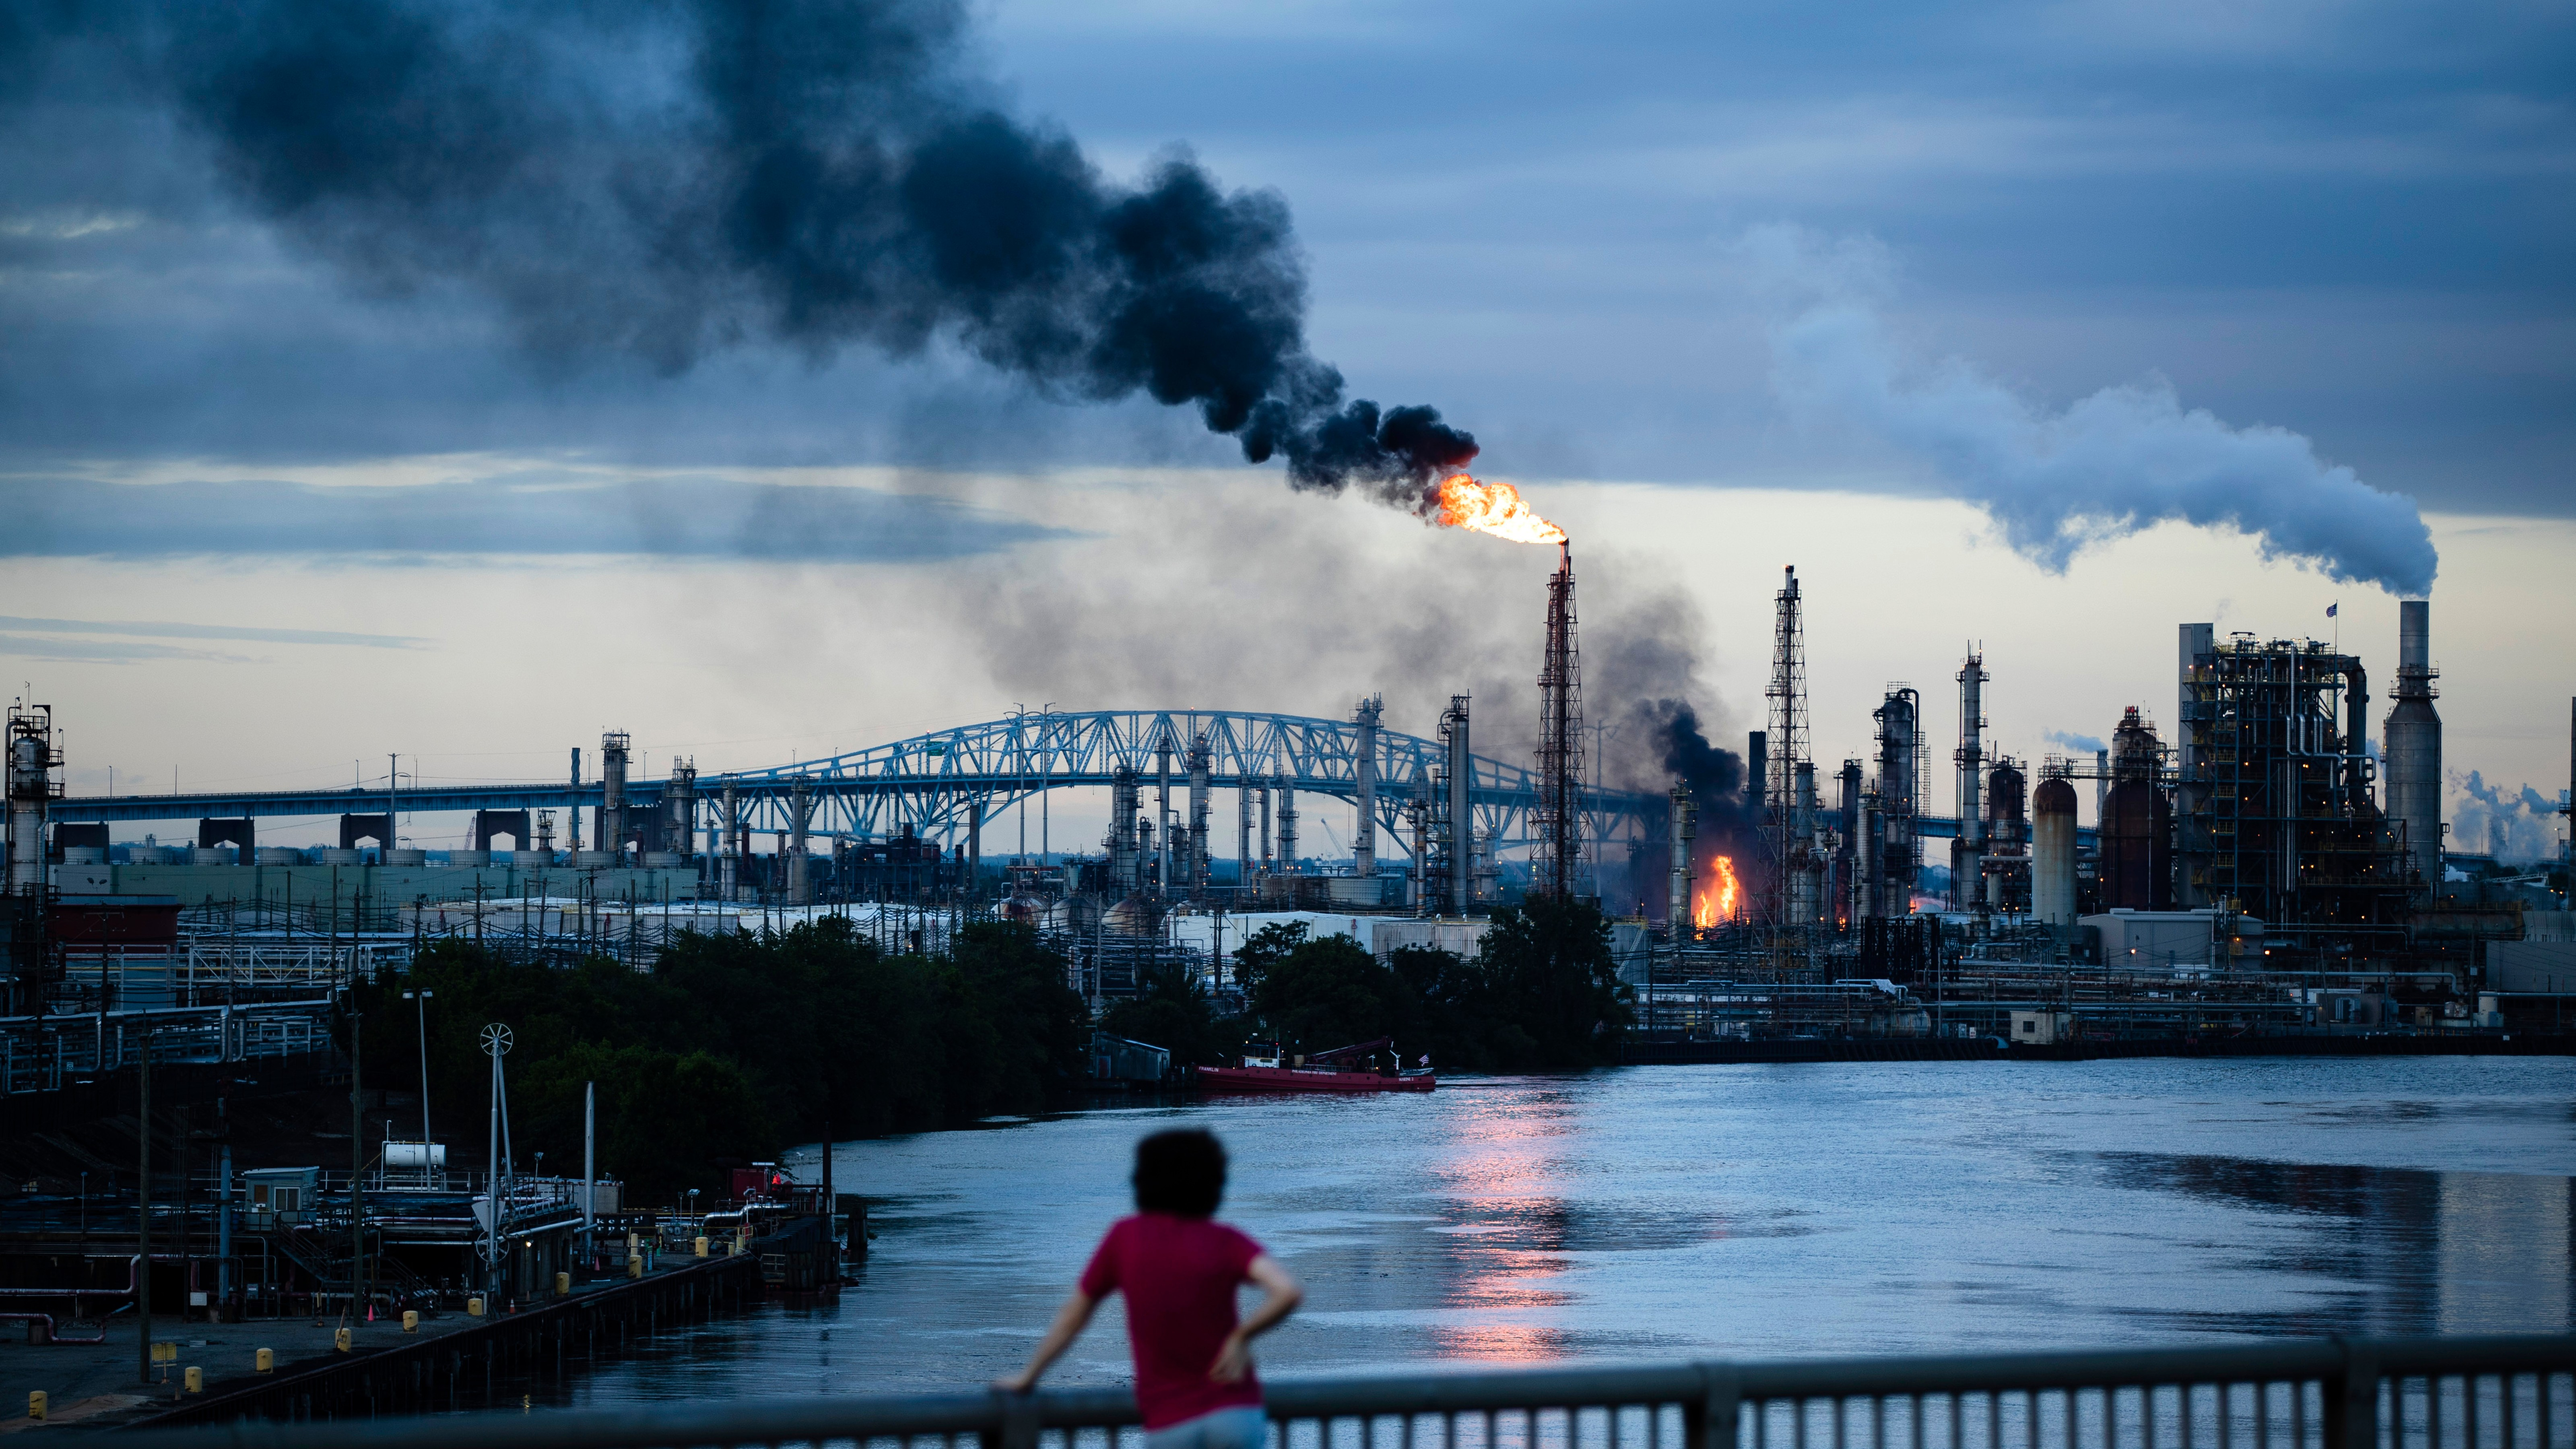 The Philly Oil Refinery That Blew Up Last Week Is Closing